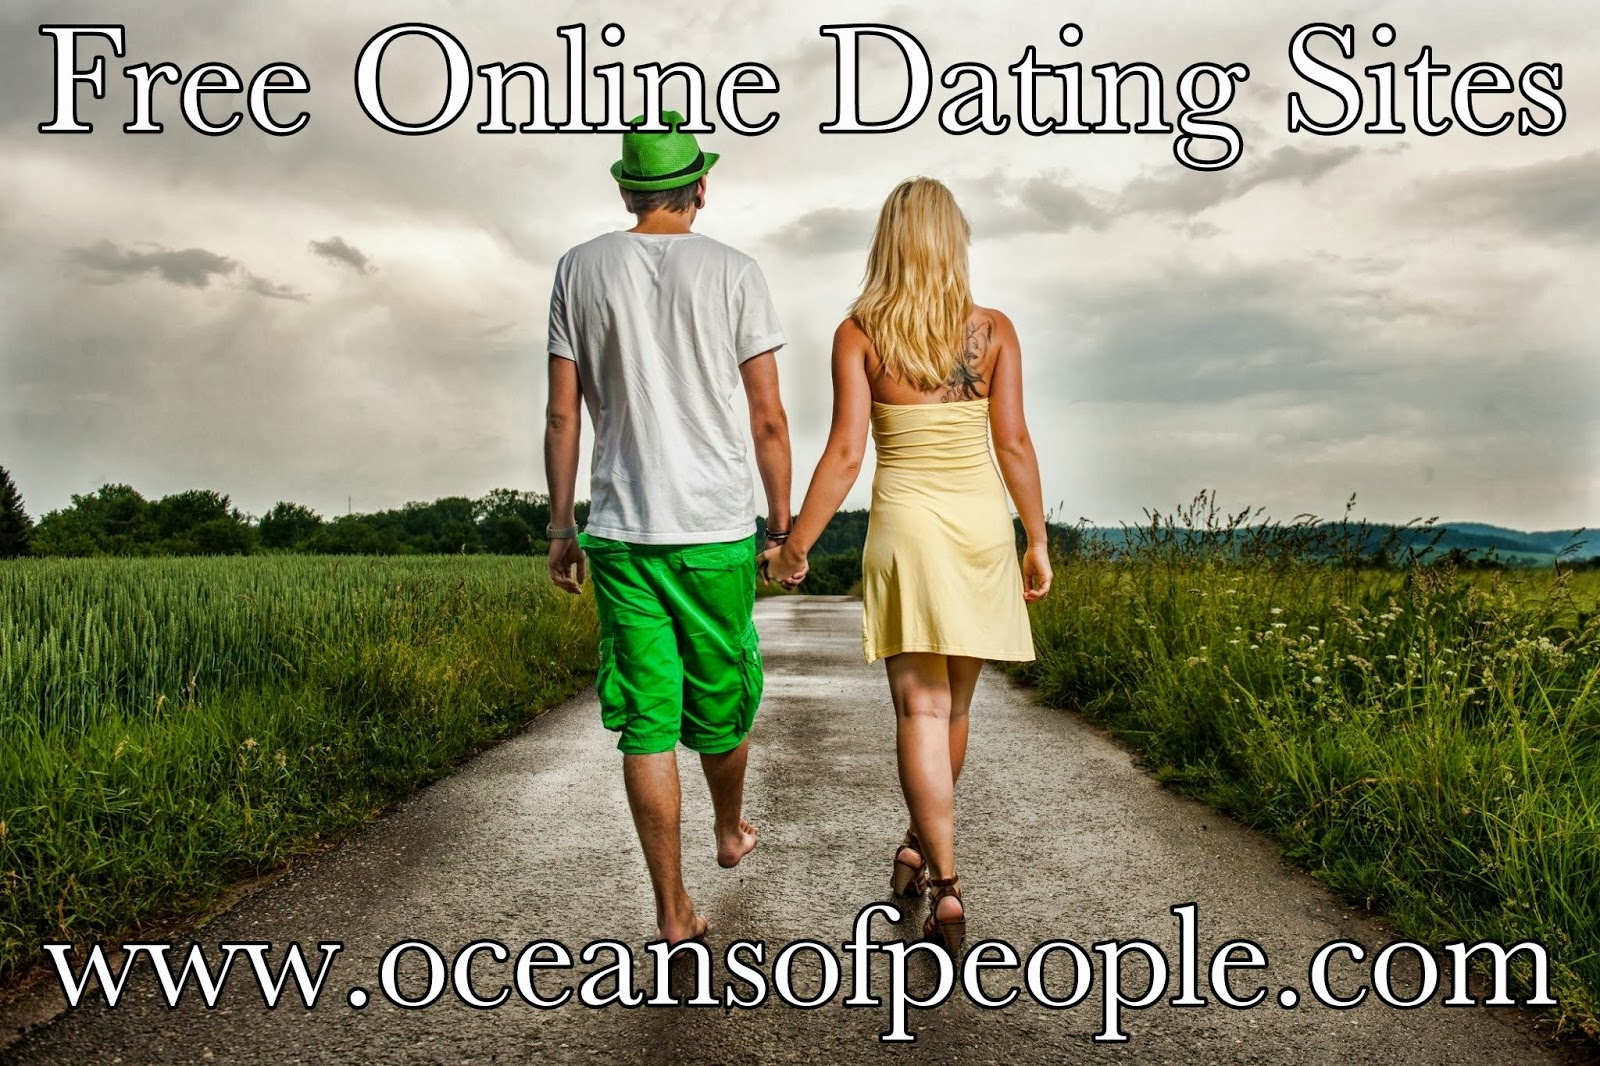 Free dating sites in cameroon